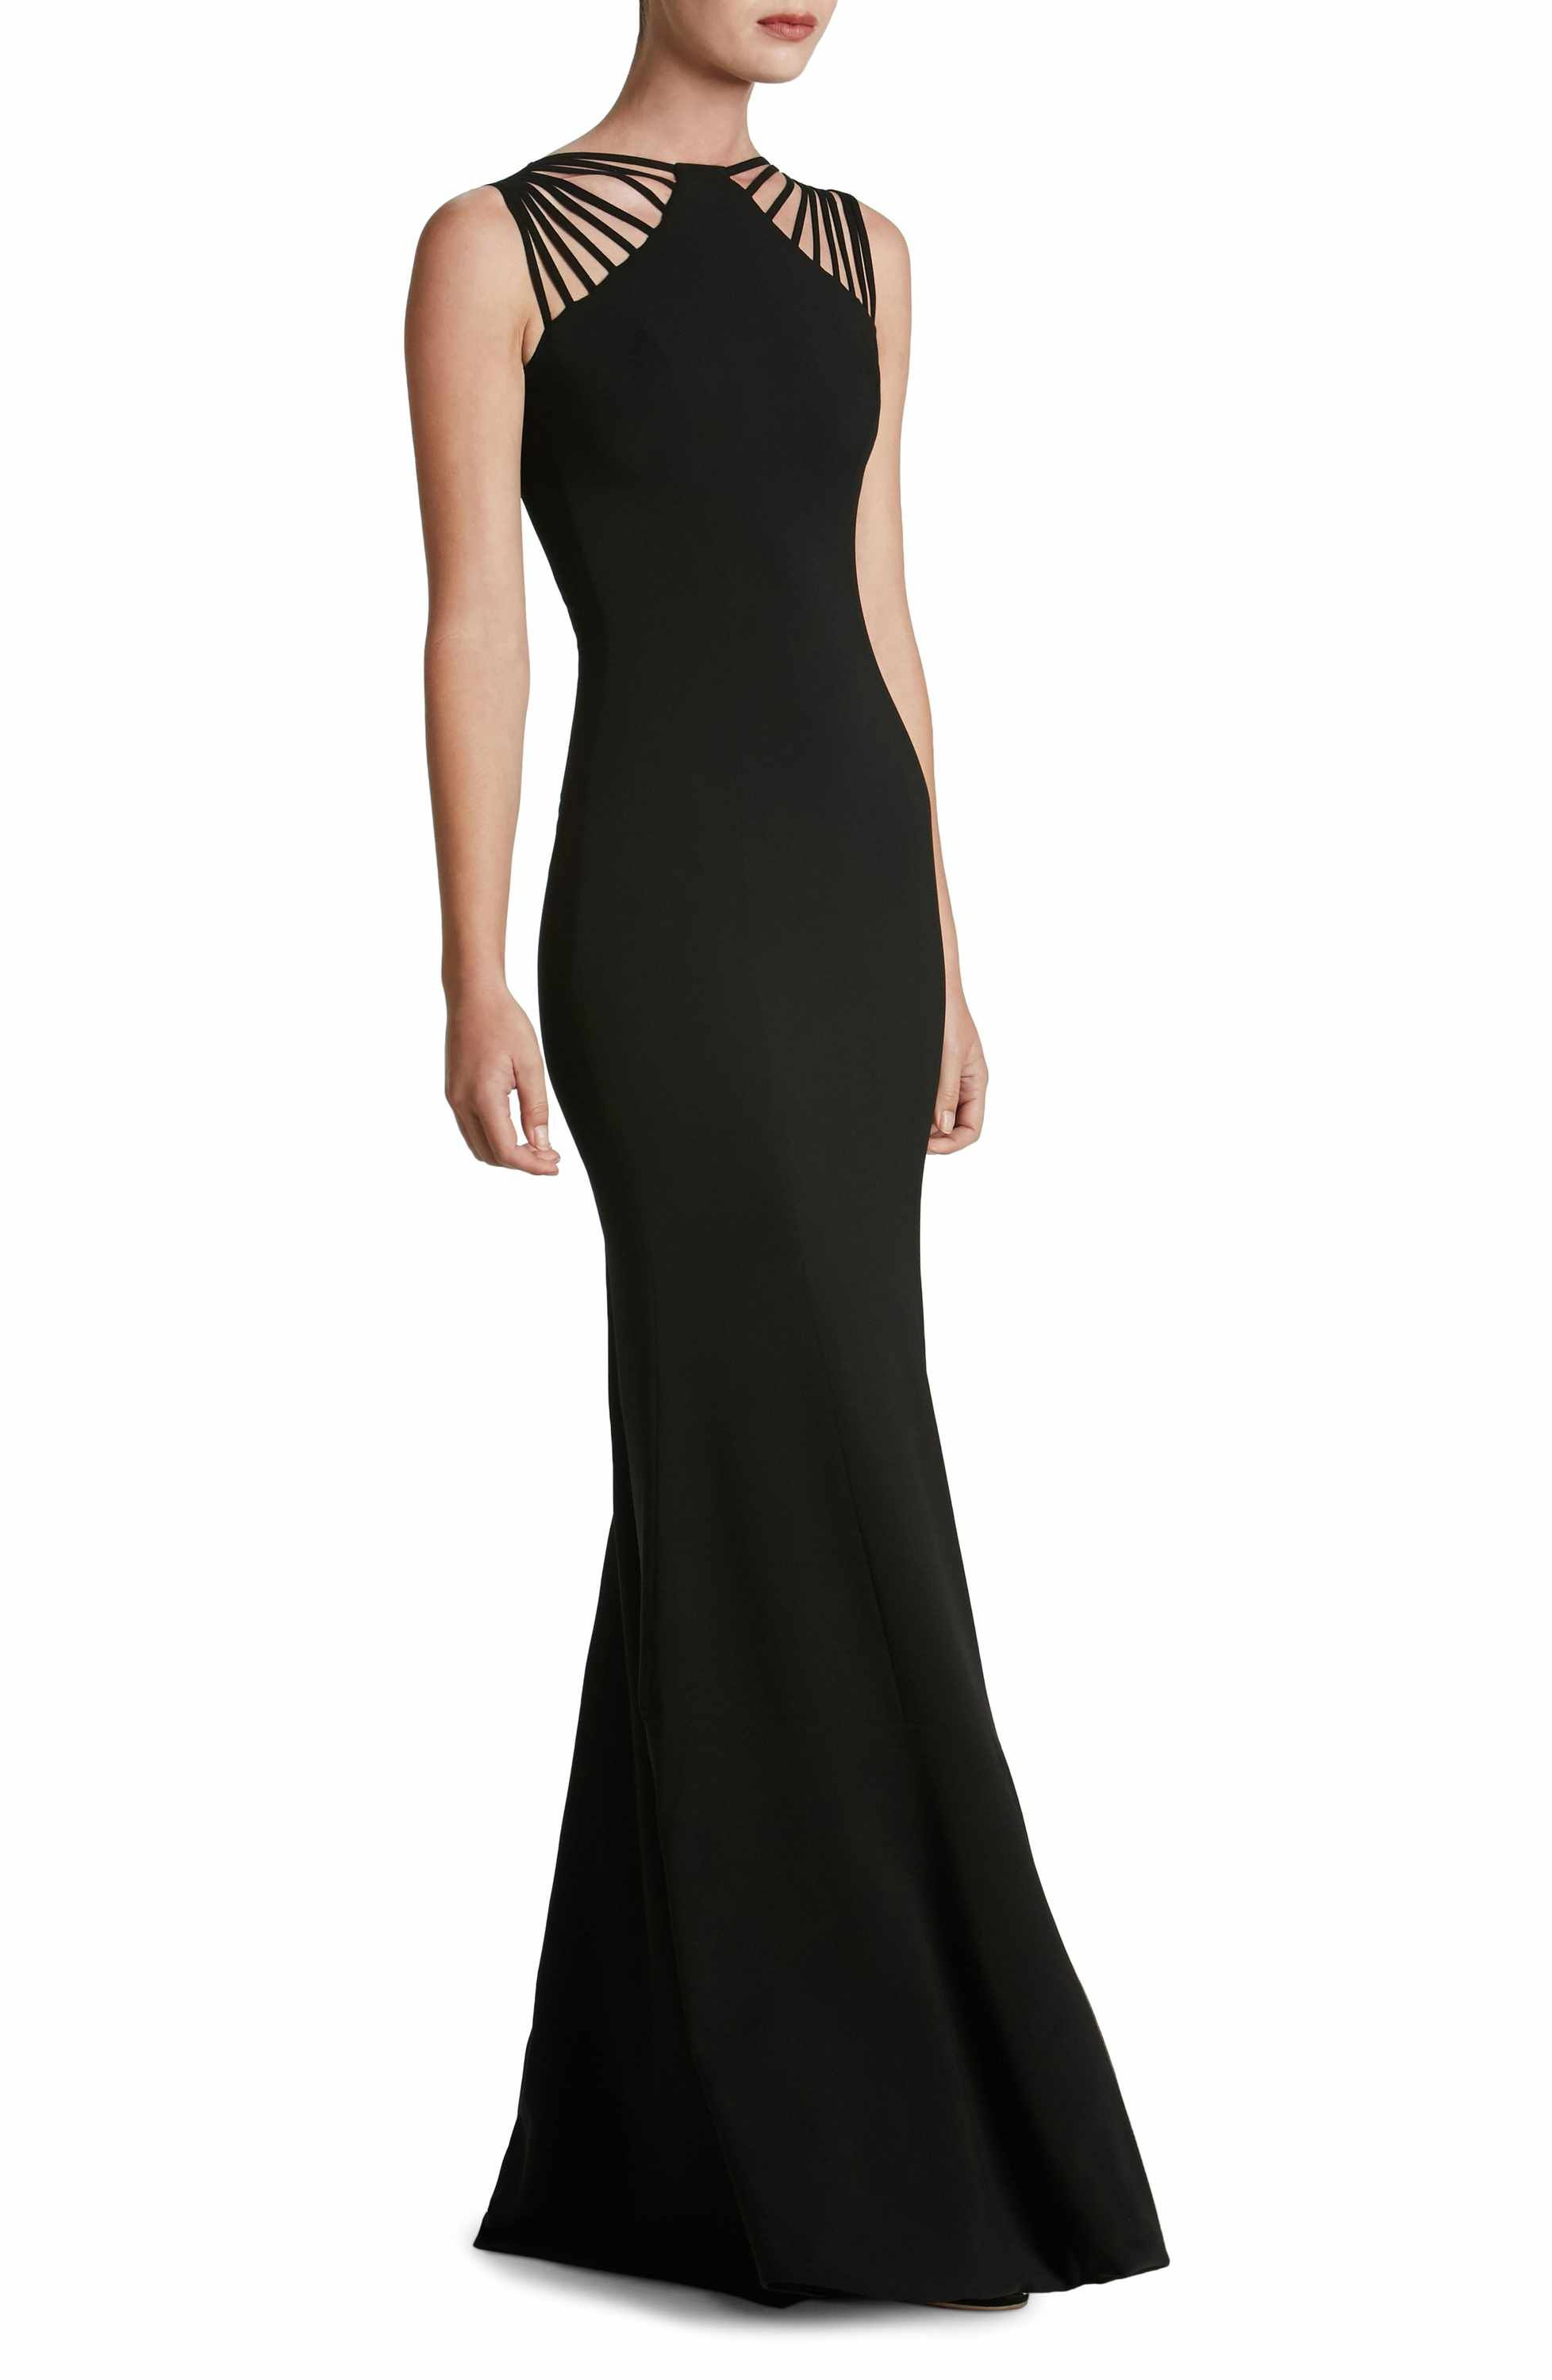 Harlow Crepe Gown | Crepes, Gowns and Nordstrom